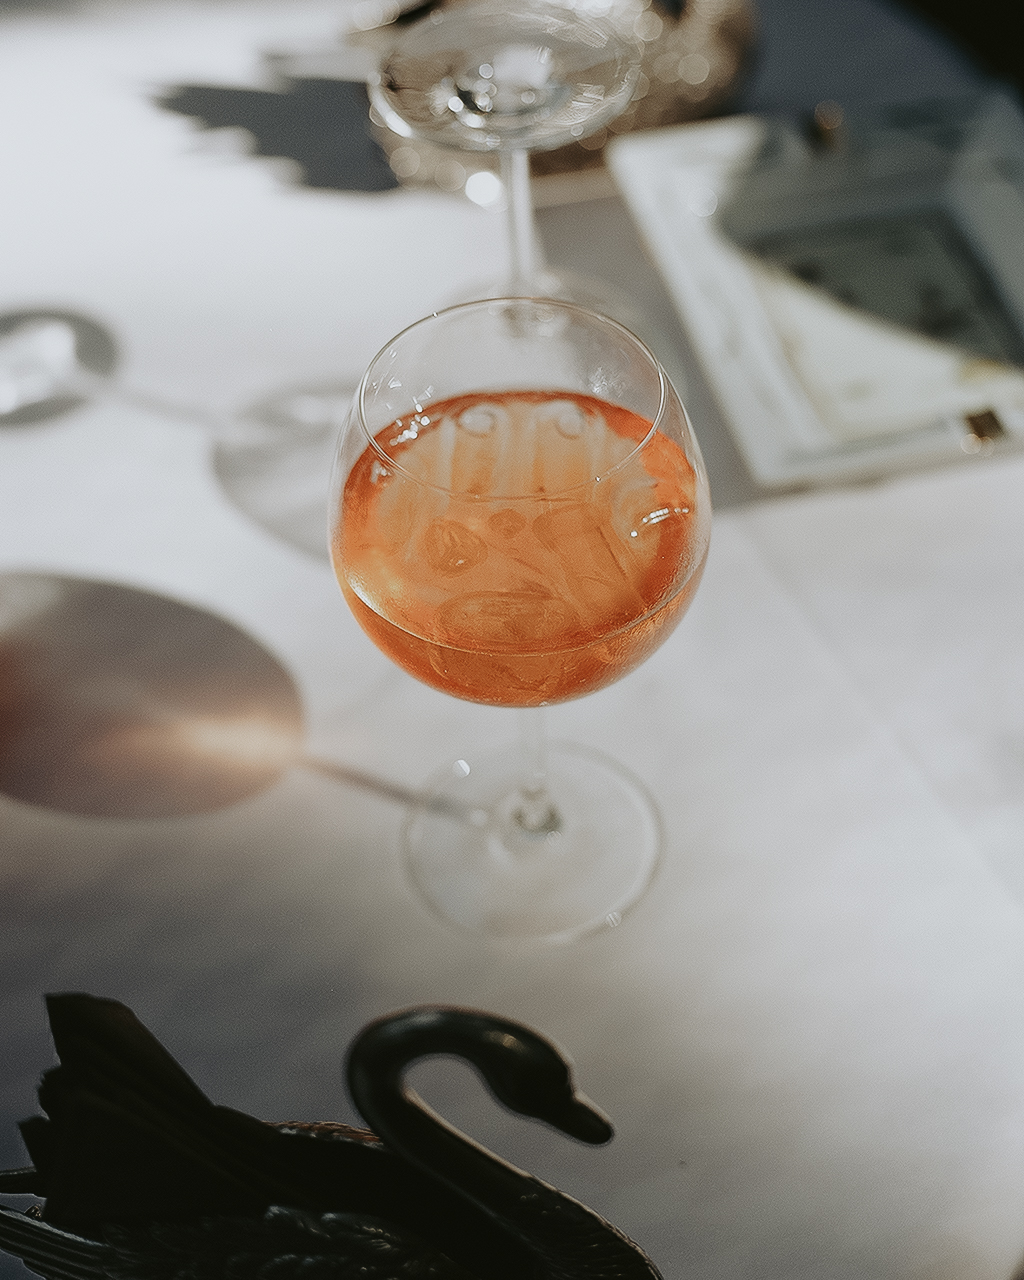 Aperol Spritz - THE drink for a sunny wedding day